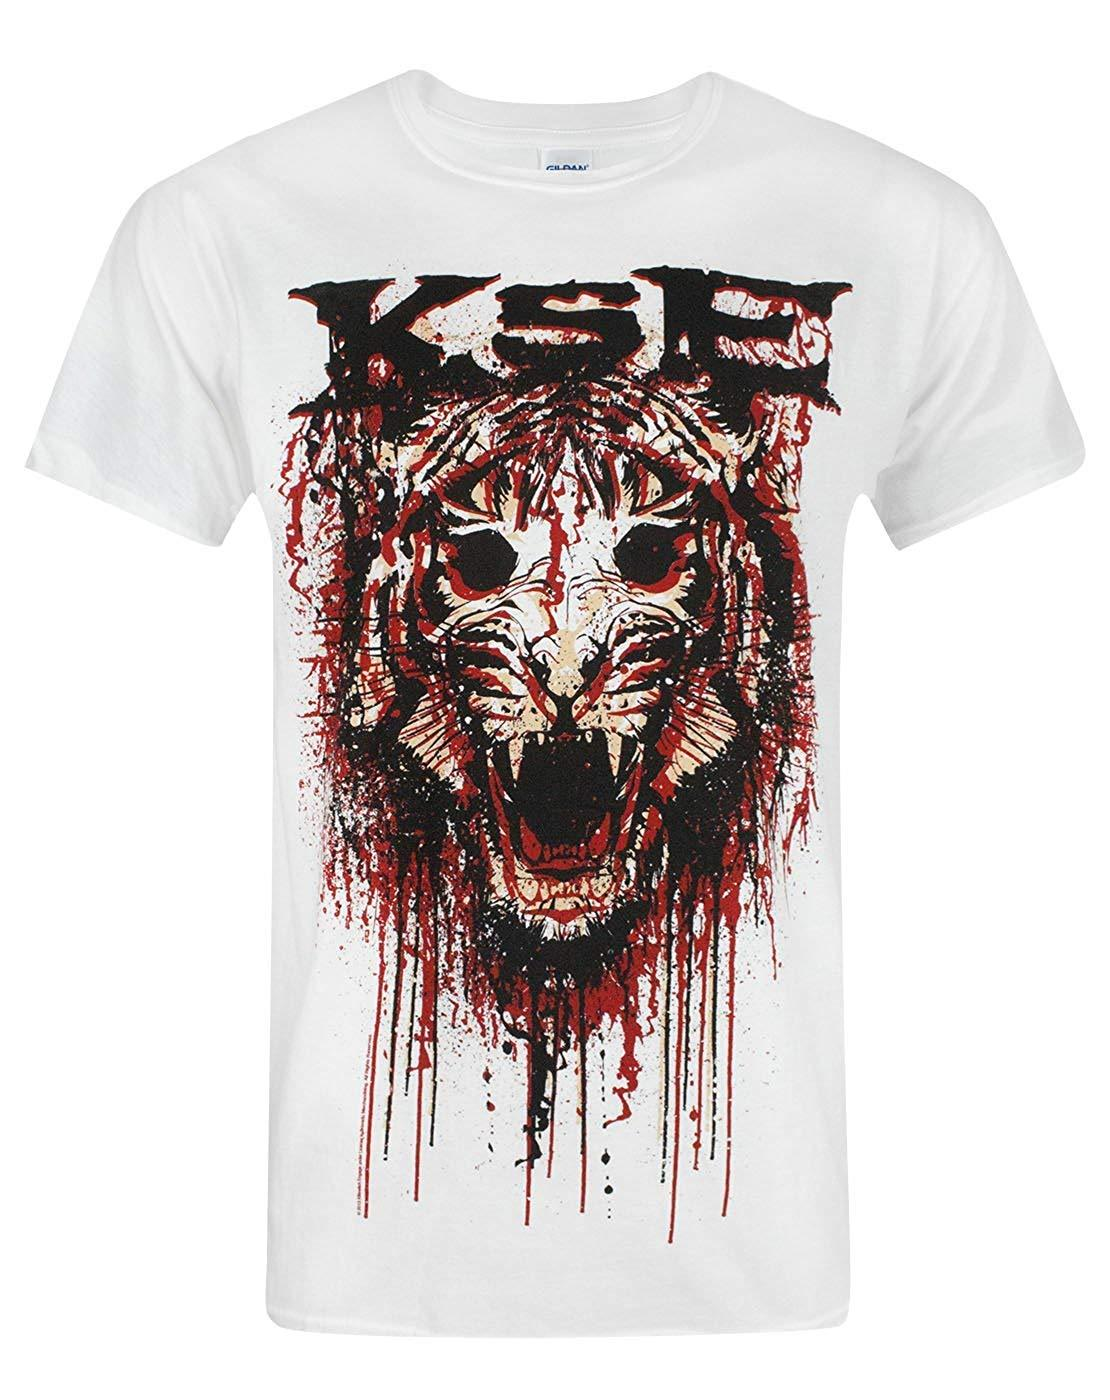 Killswitch Engage Fury Camiseta hombre Summer O-Neck Tops